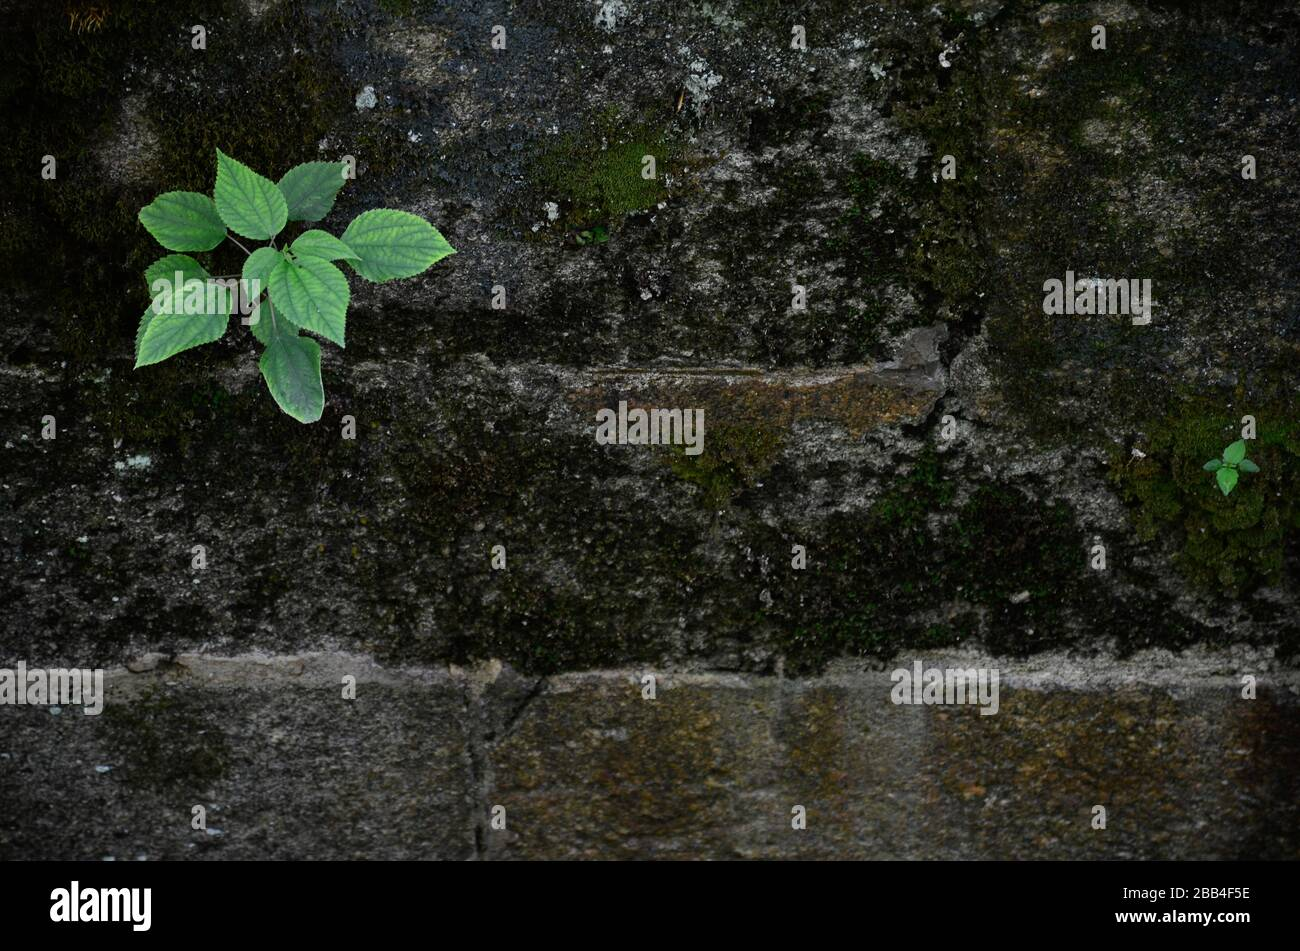 Green plant and a smaller shoot grow on a mossy brick wall. Stock Photo